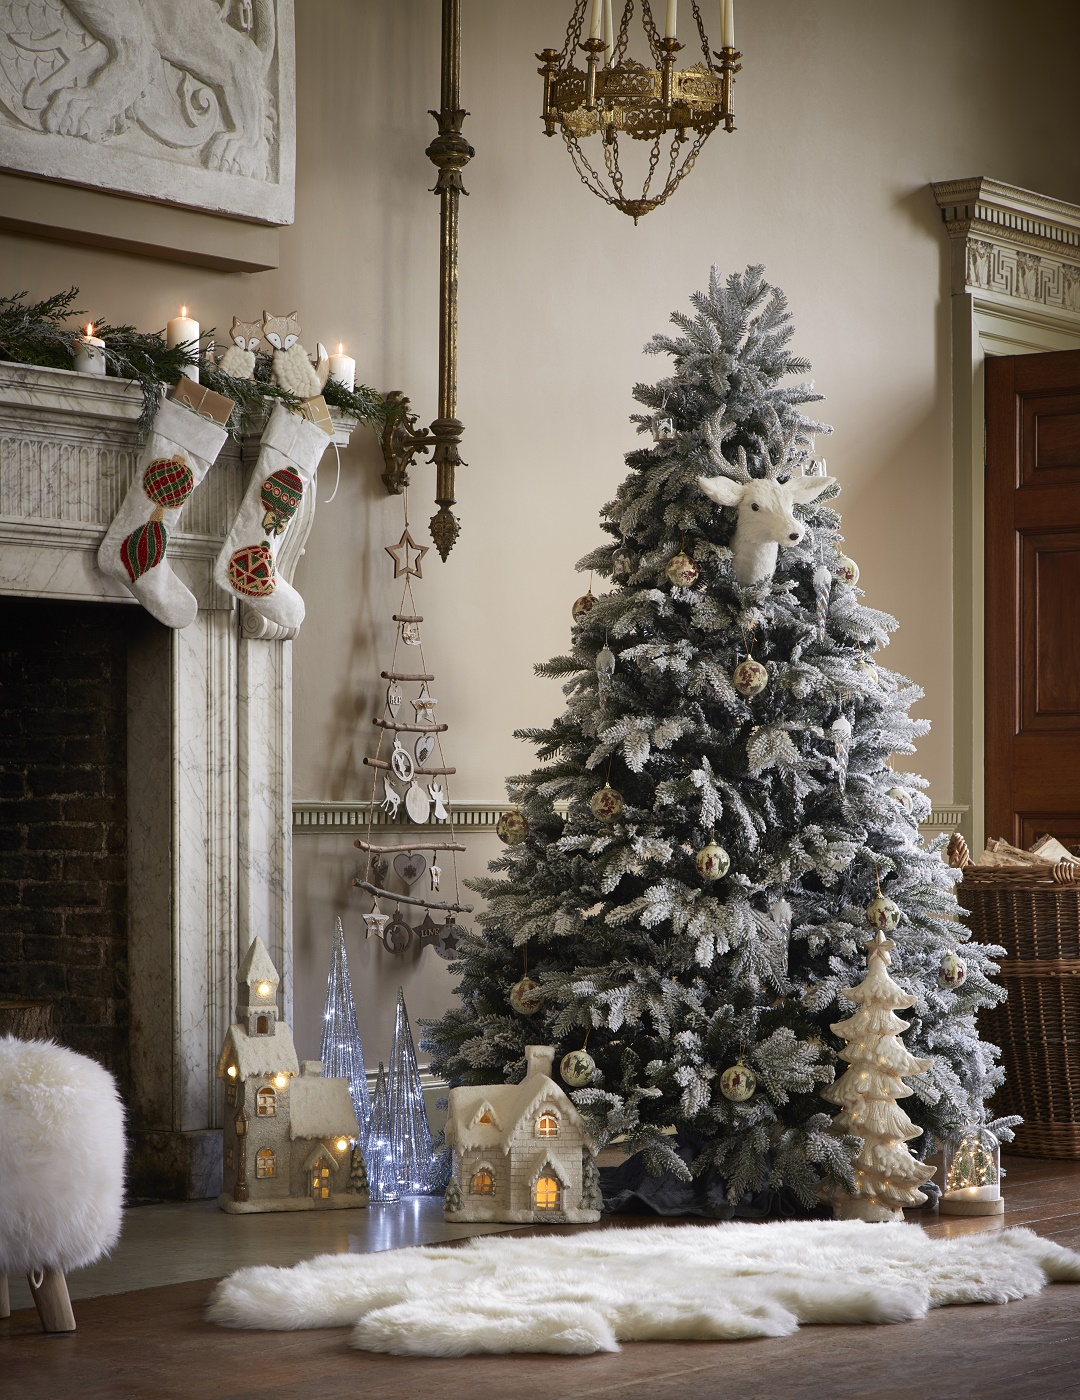 How To Create The Perfect Christmas Tree In 10 Easy Steps The